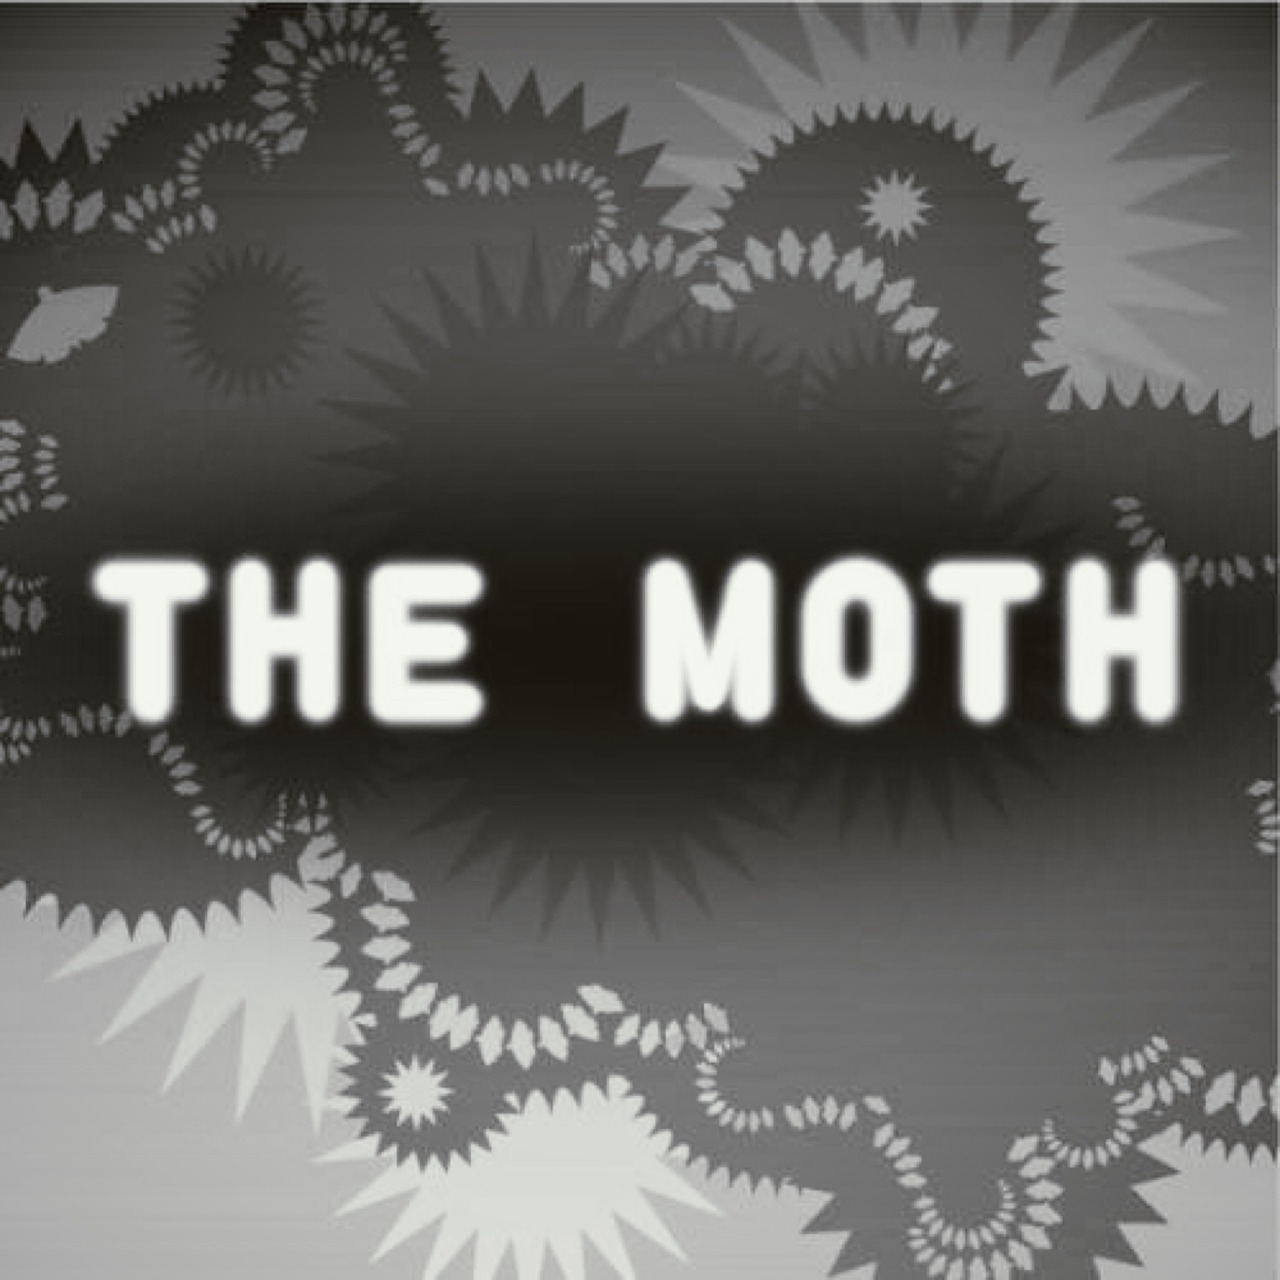 Guess who's hosting a #moth #storyslam? ME! Aug 25 part of #afropunk http://themoth.org/events/event/the-moth-and-afropunk-after-dark-attitude – View on Path.